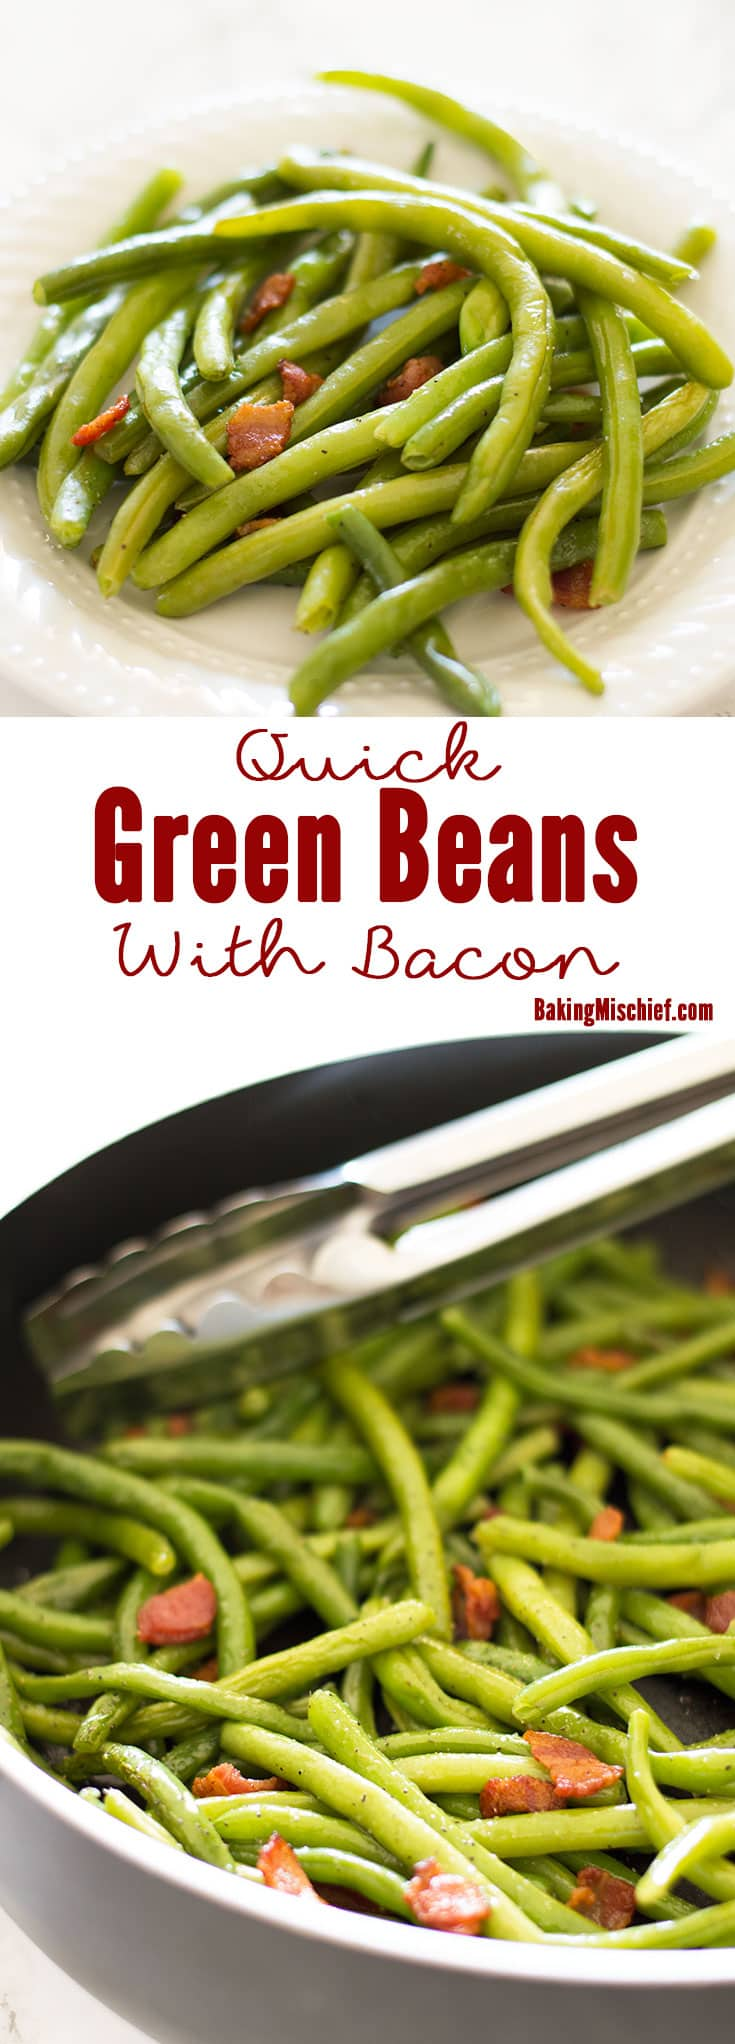 Fresh green beans with chopped bacon, tossed in bacon drippings make an easy, tasty, and surprisingly low-calorie side dish. Recipe includes nutritional information. From BakingMischief.com